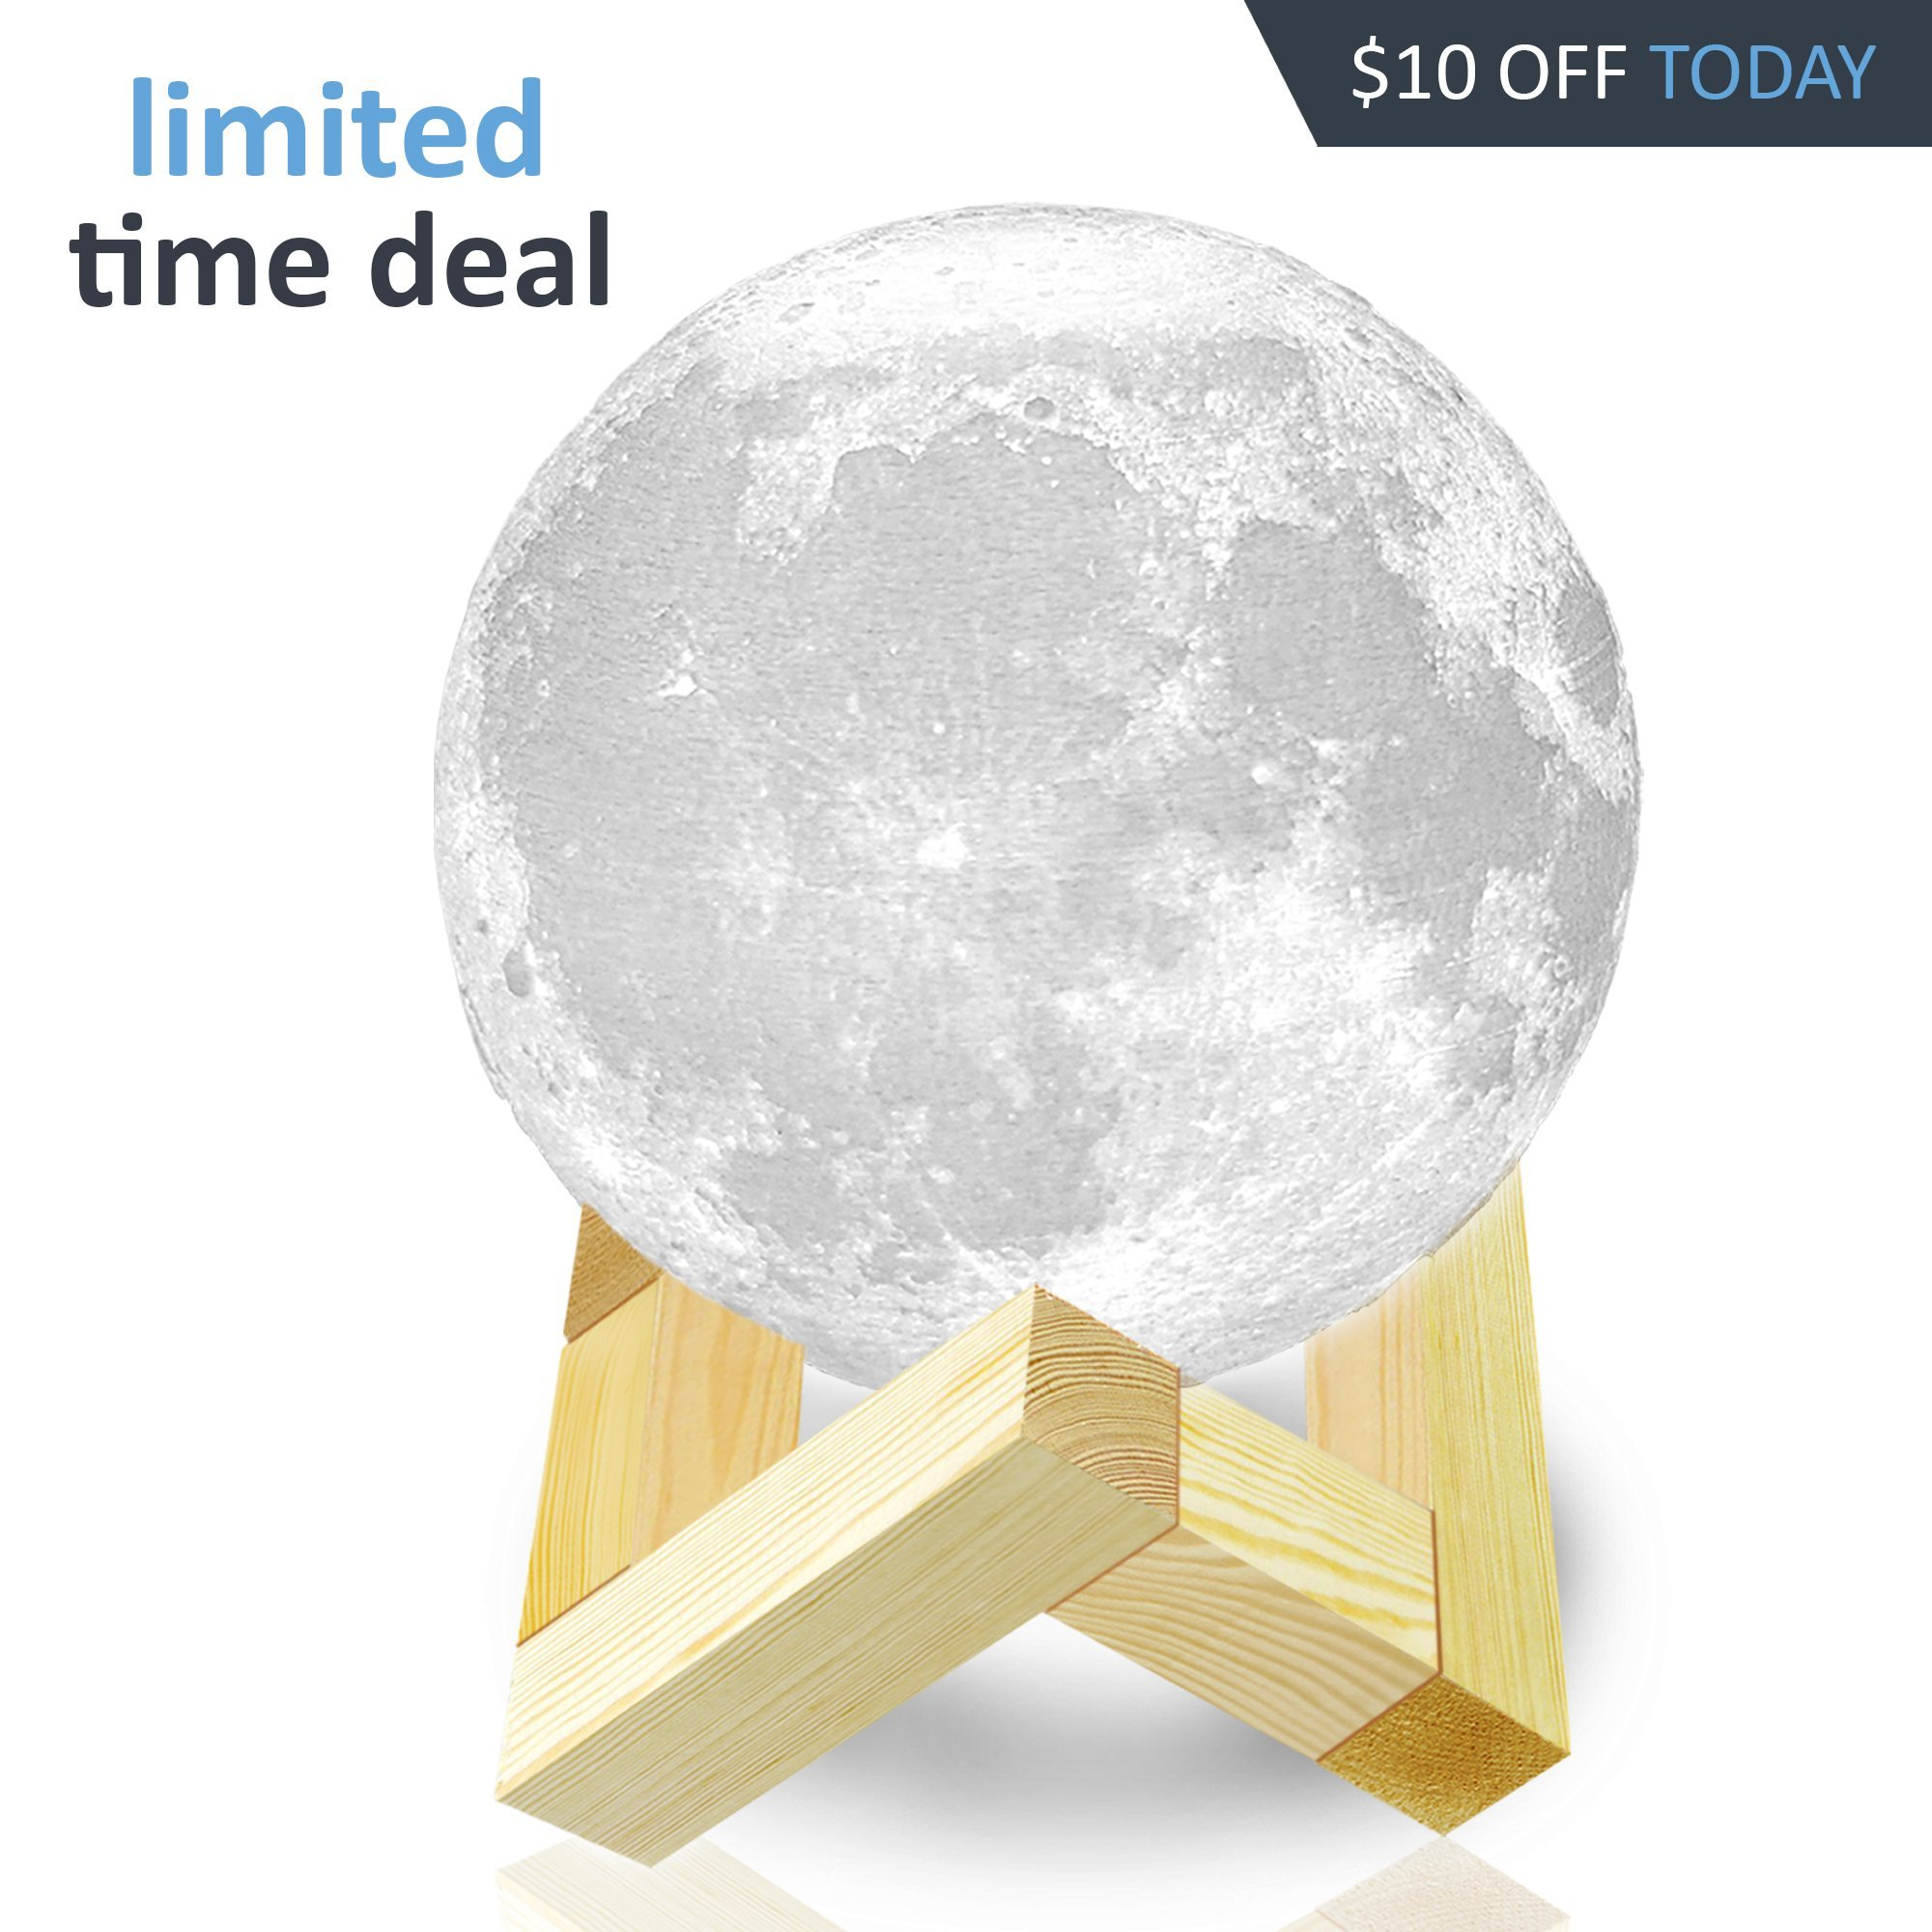 Moon Lamp Moon Light 3d Moon Lamp - [USA SELLER] [UPGRADE] 3 Color Moon Night Light With Stand - Mood Lamp Book, Globe, Cool Lamp, 3.9 in, USB Charging, With Wooden Stand, Box, Kids, MoonLight LED